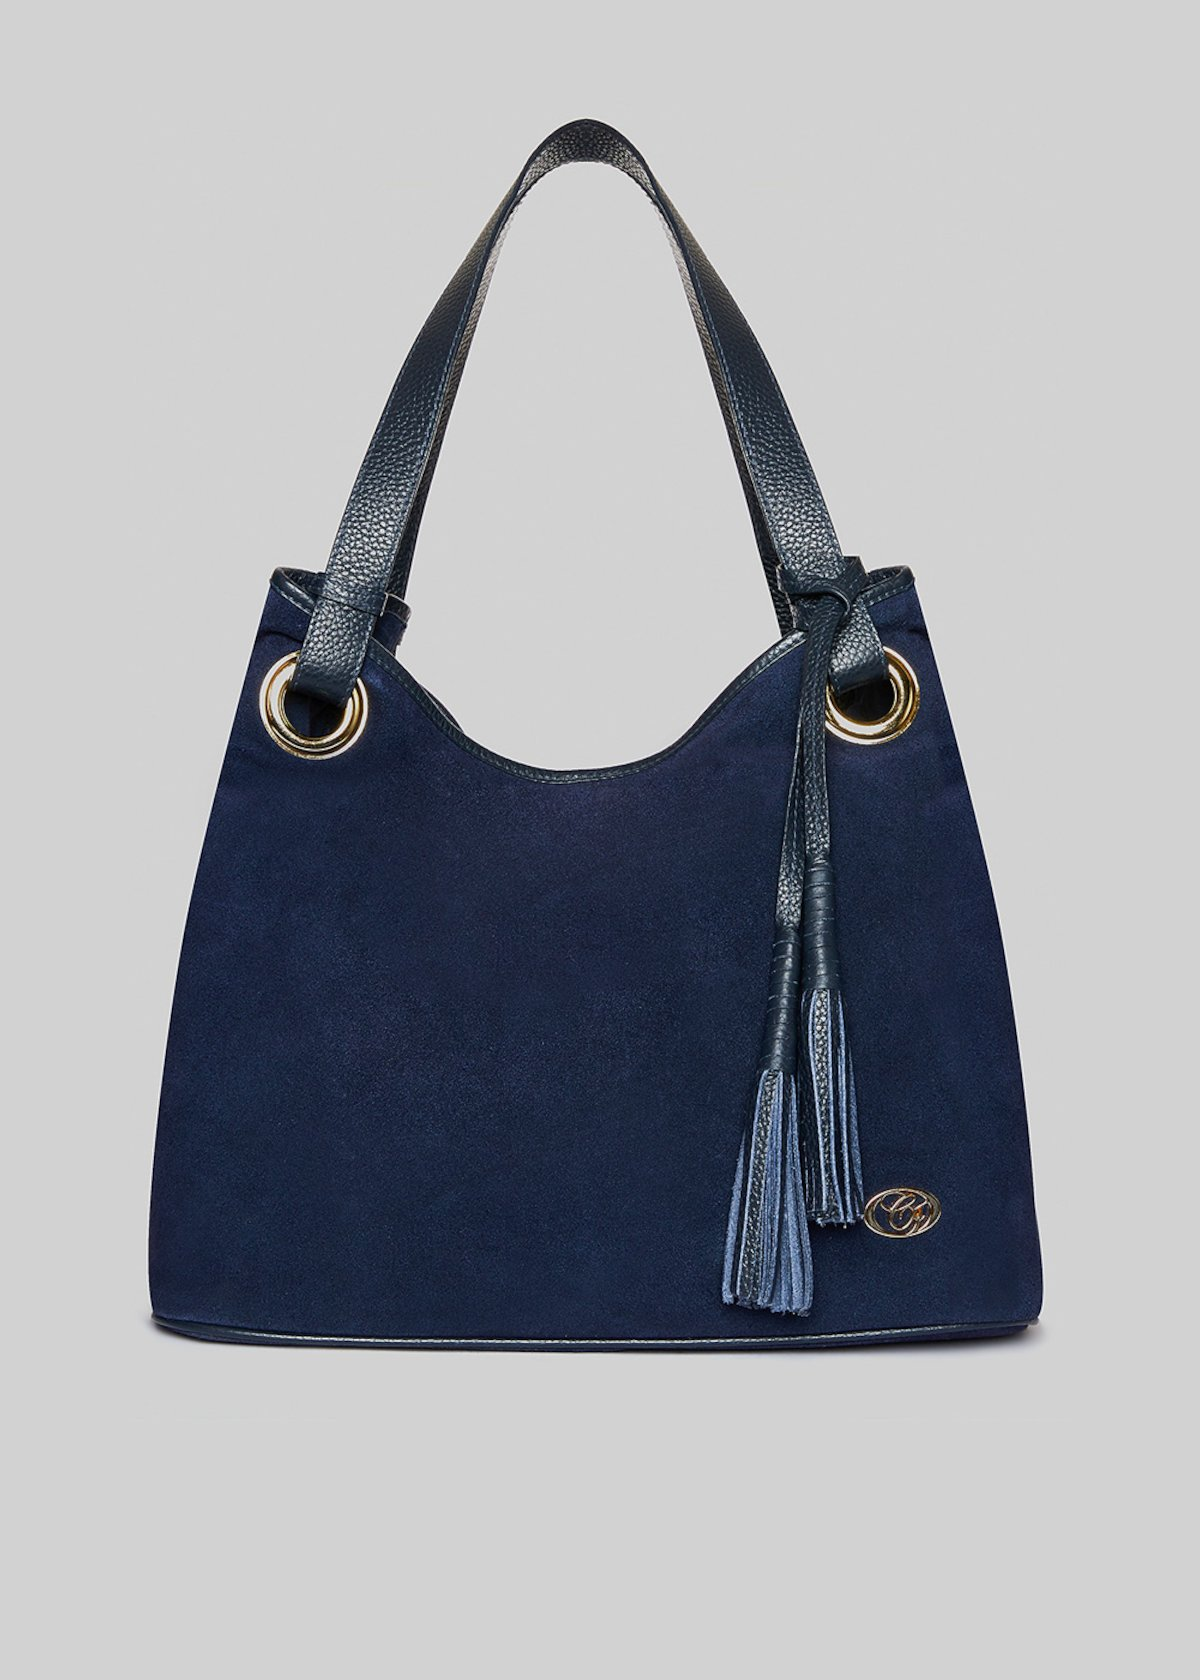 Blaudia leather bag real suede and tassels detail